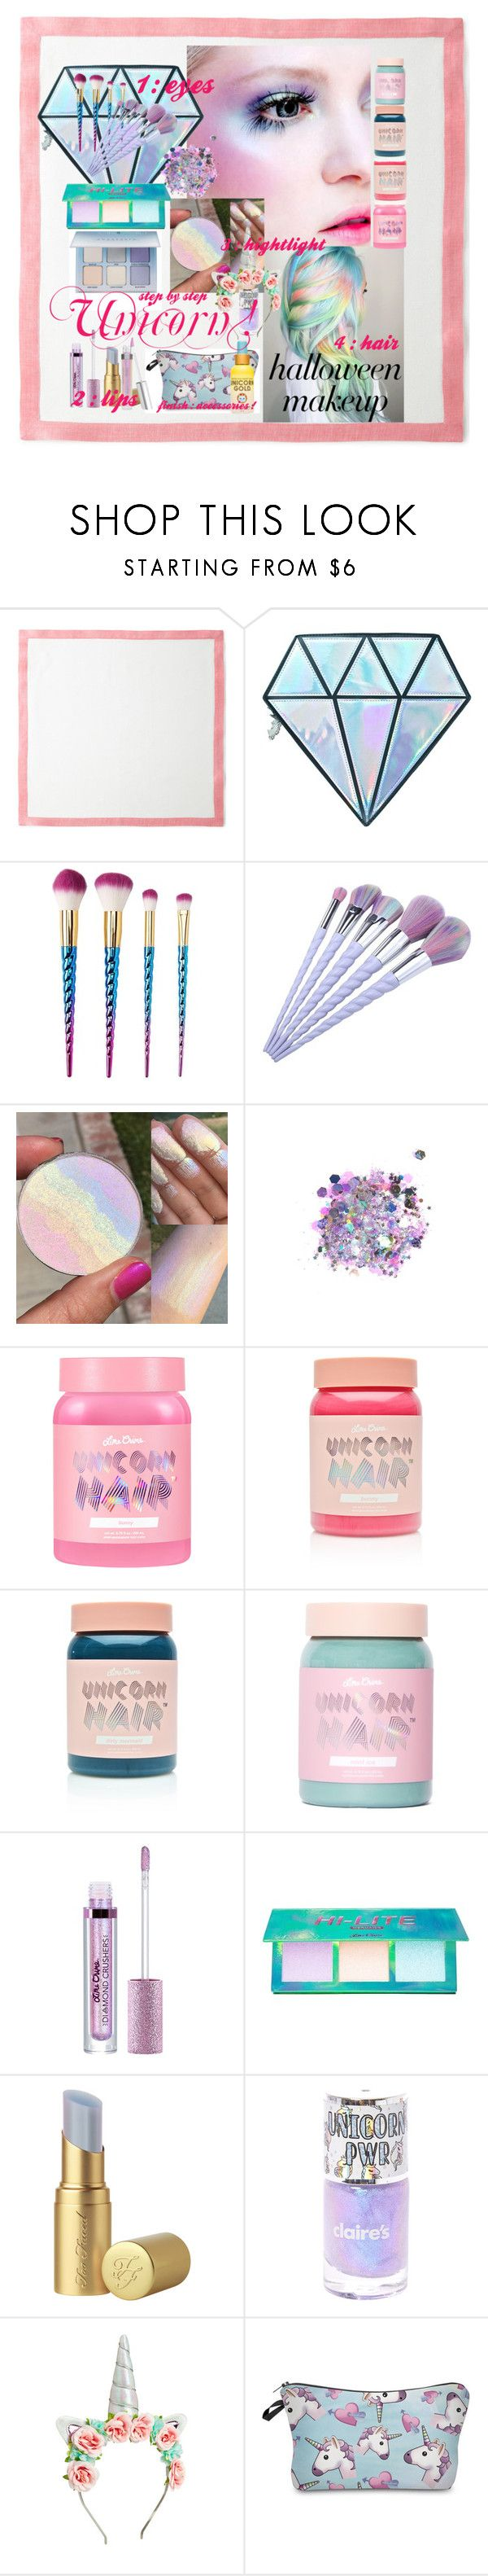 Halloween Makeup : Unicorn ! by reemily on Polyvore featuring beauté, Lime Crime, The Gypsy Shrine, Charlotte Russe, Unicorn Lashes, Too Faced Cosmetics, Deborah Rhodes and Squatty Potty